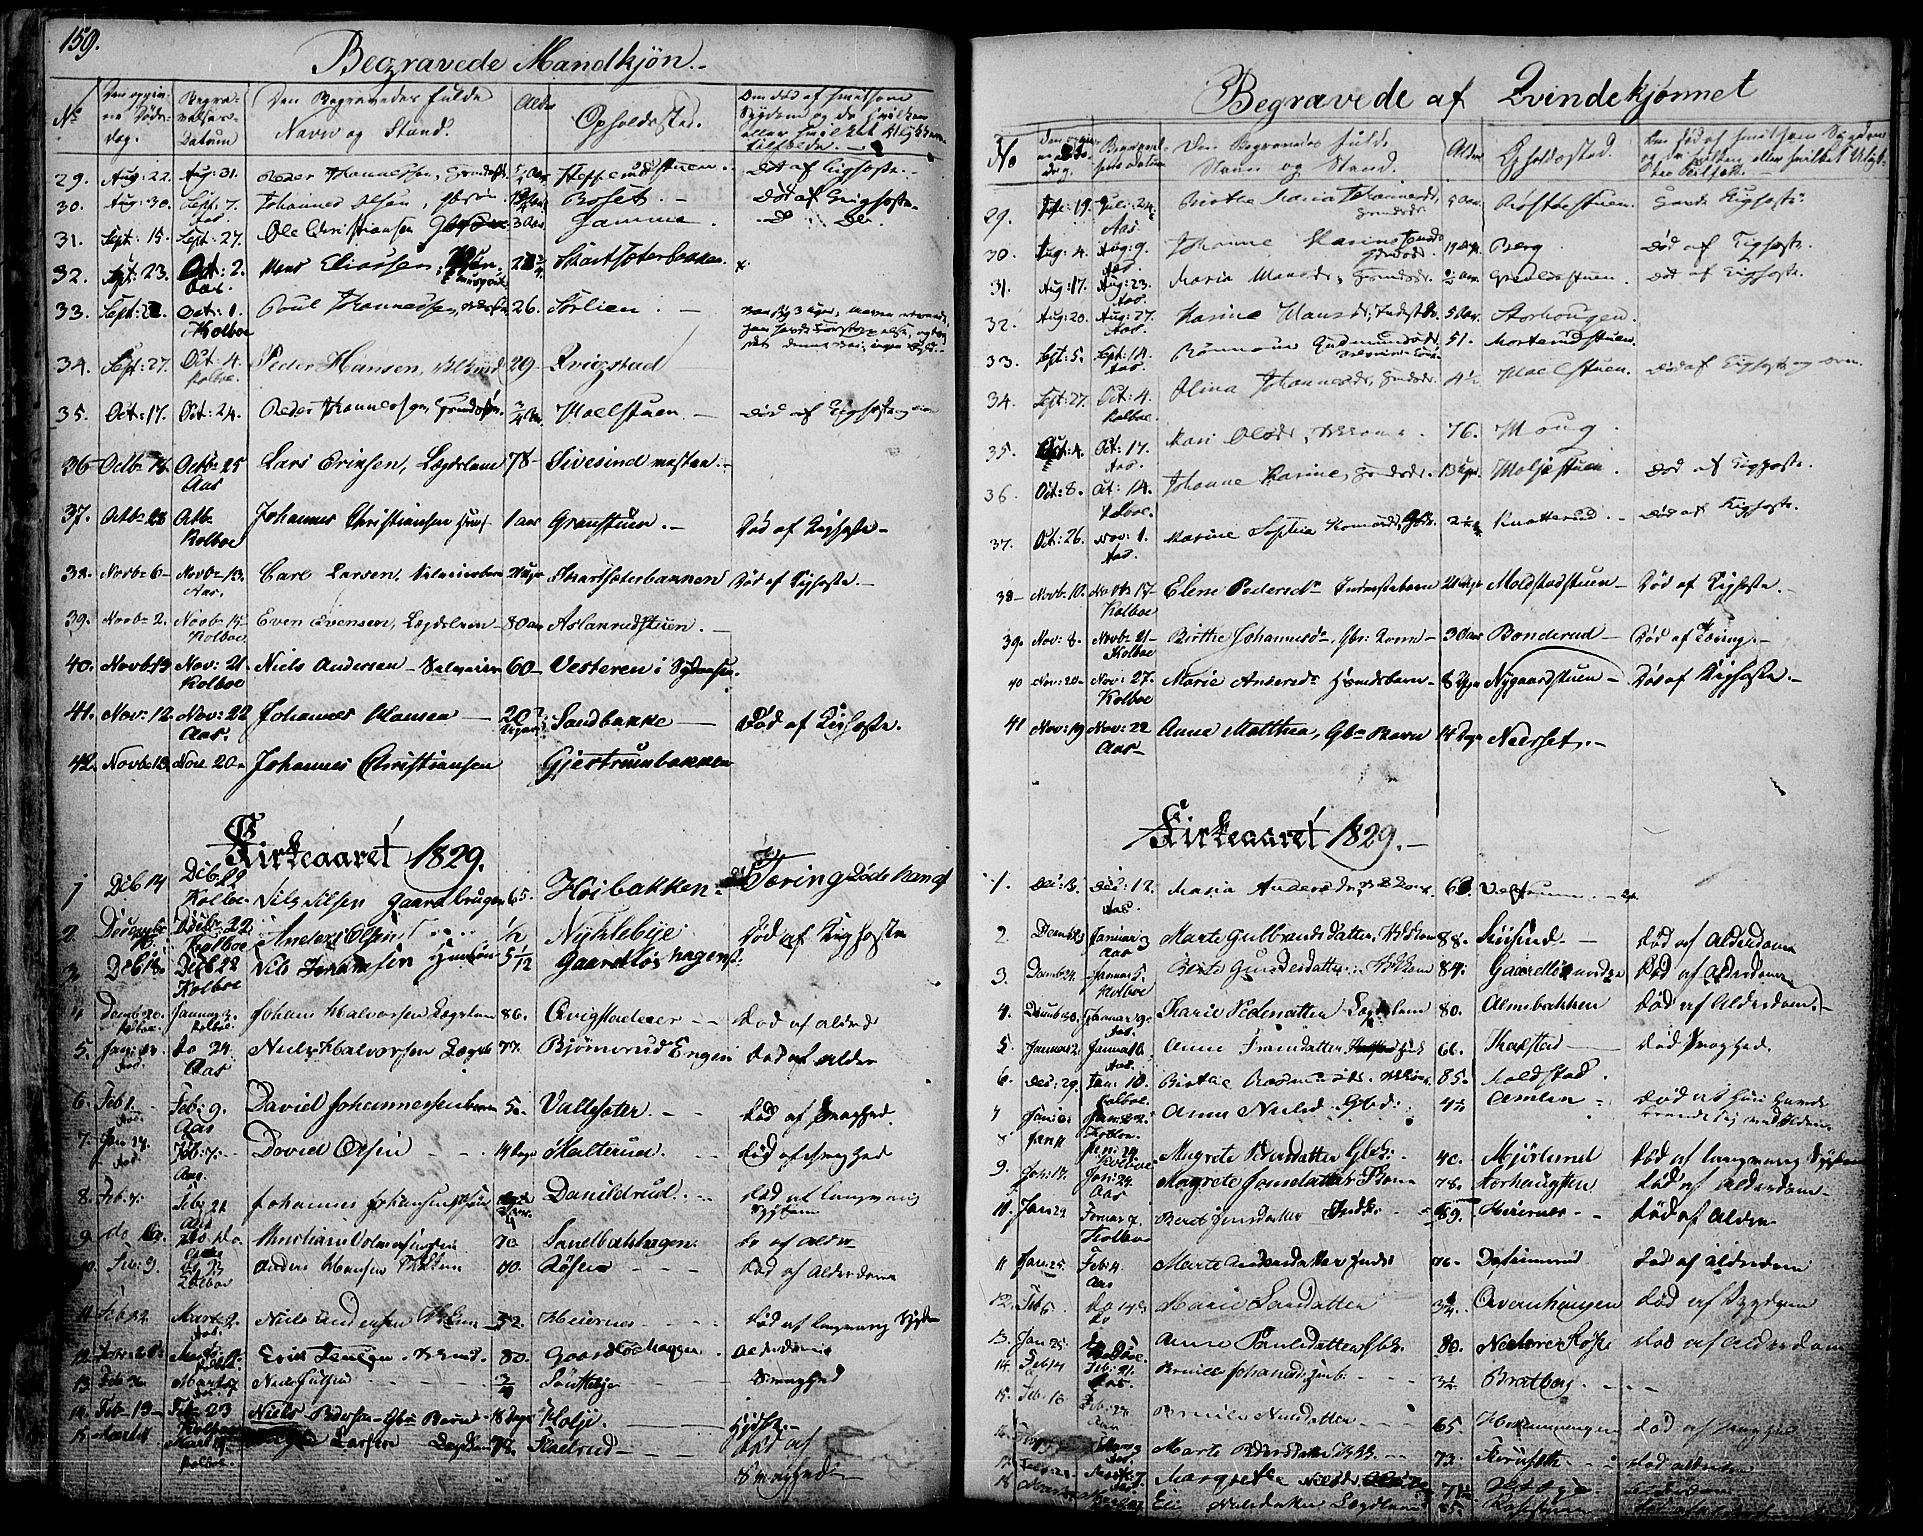 SAH, Vestre Toten prestekontor, H/Ha/Haa/L0002: Parish register (official) no. 2, 1825-1837, p. 159